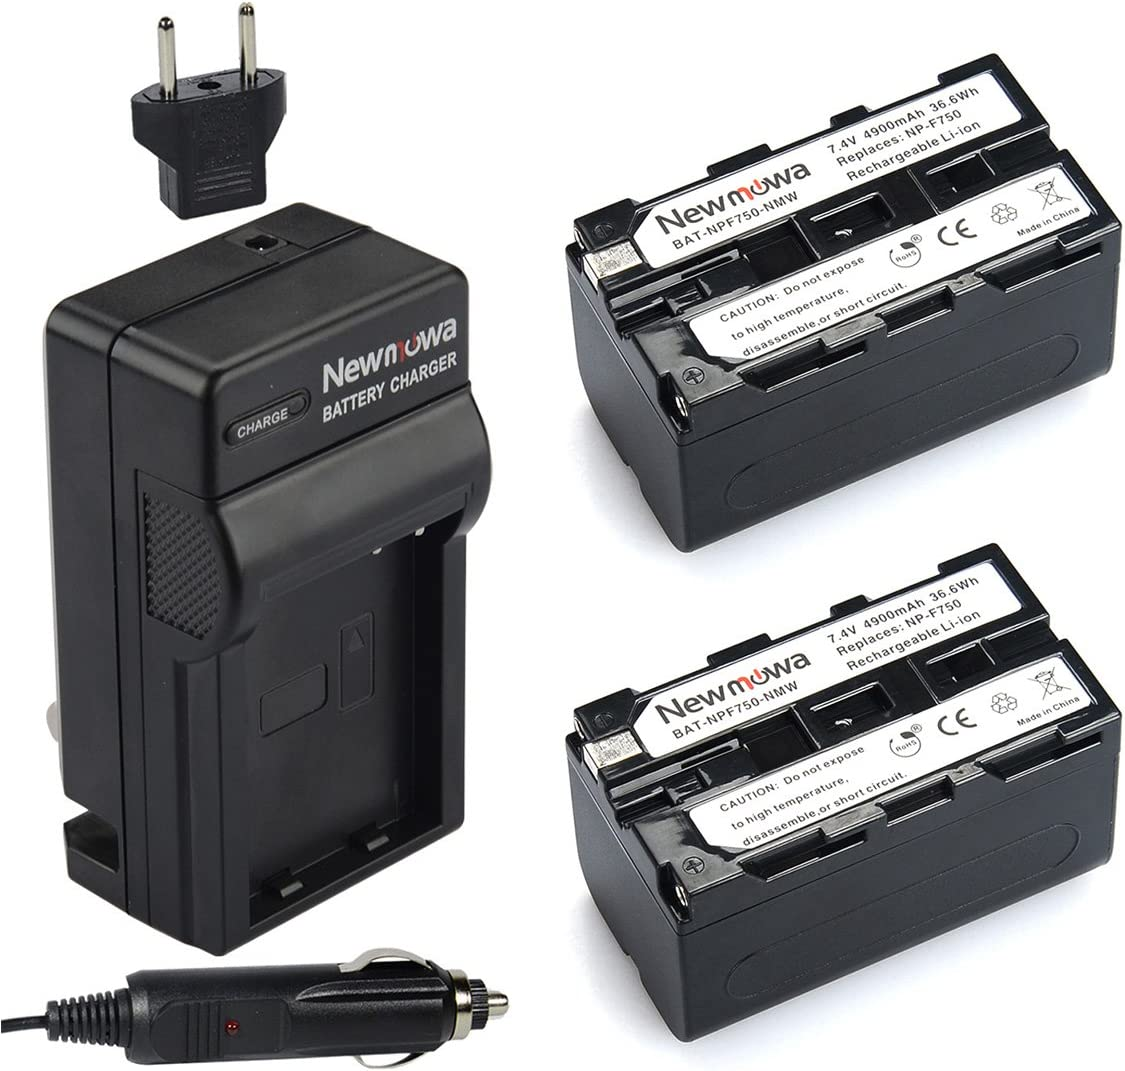 Newmowa NP-F750 Replacement Battery (2-Pack) and Charger Kit for Sony NP-F730,NP-F750,NP-F760,NP-F770